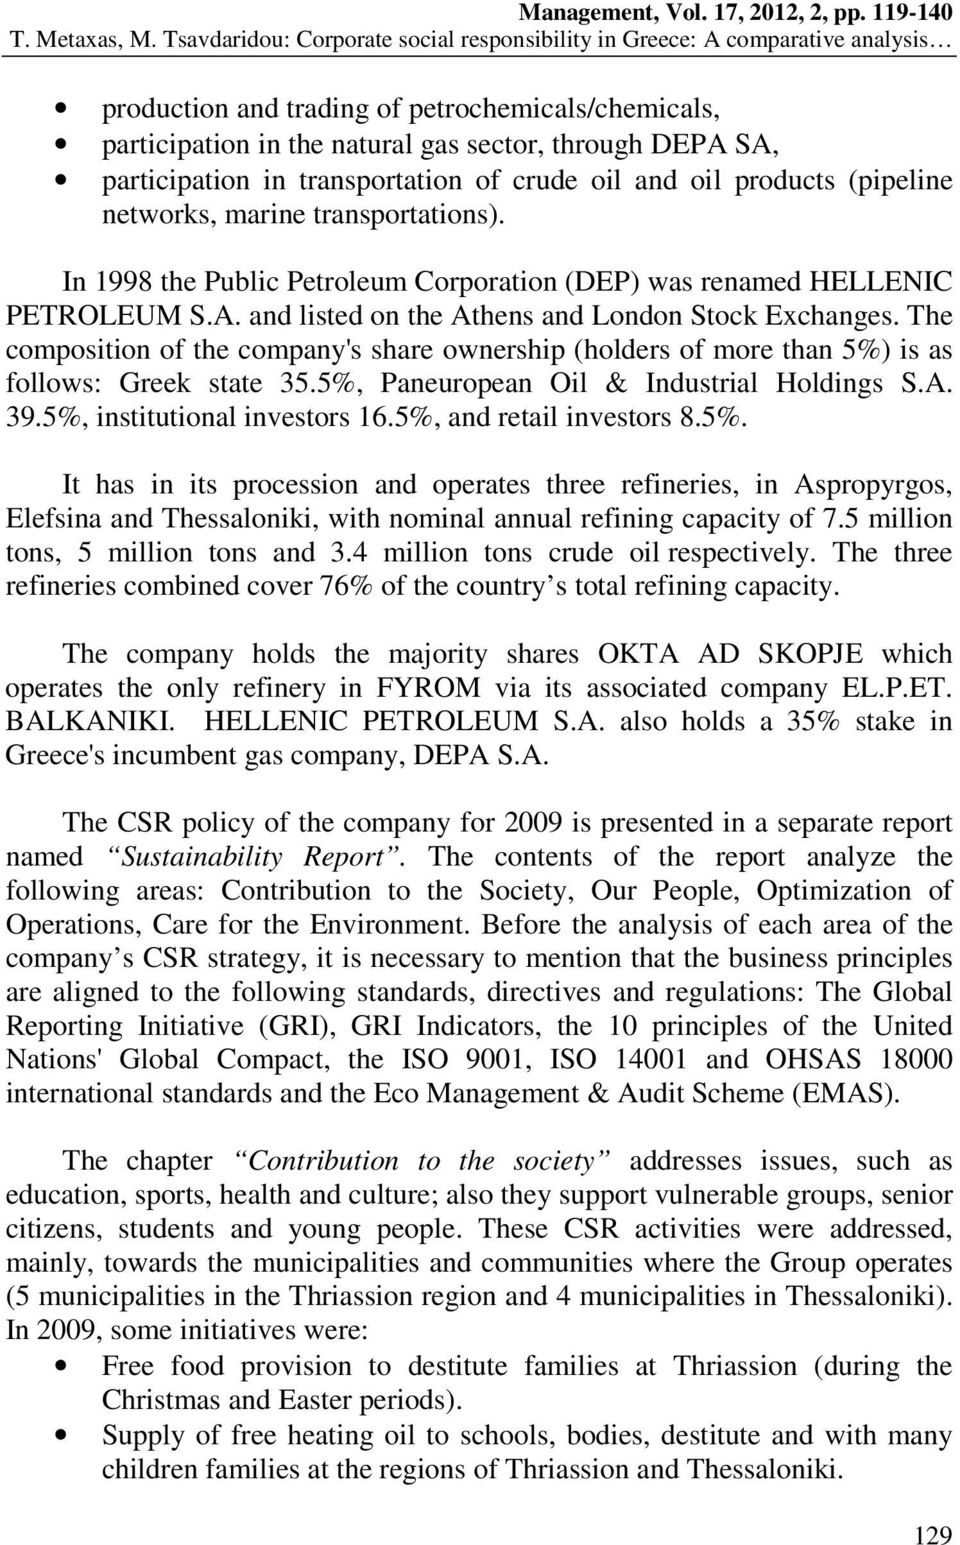 The composition of the company's share ownership (holders of more than 5%) is as follows: Greek state 35.5%, Paneuropean Oil & Industrial Holdings S.A. 39.5%, institutional investors 16.